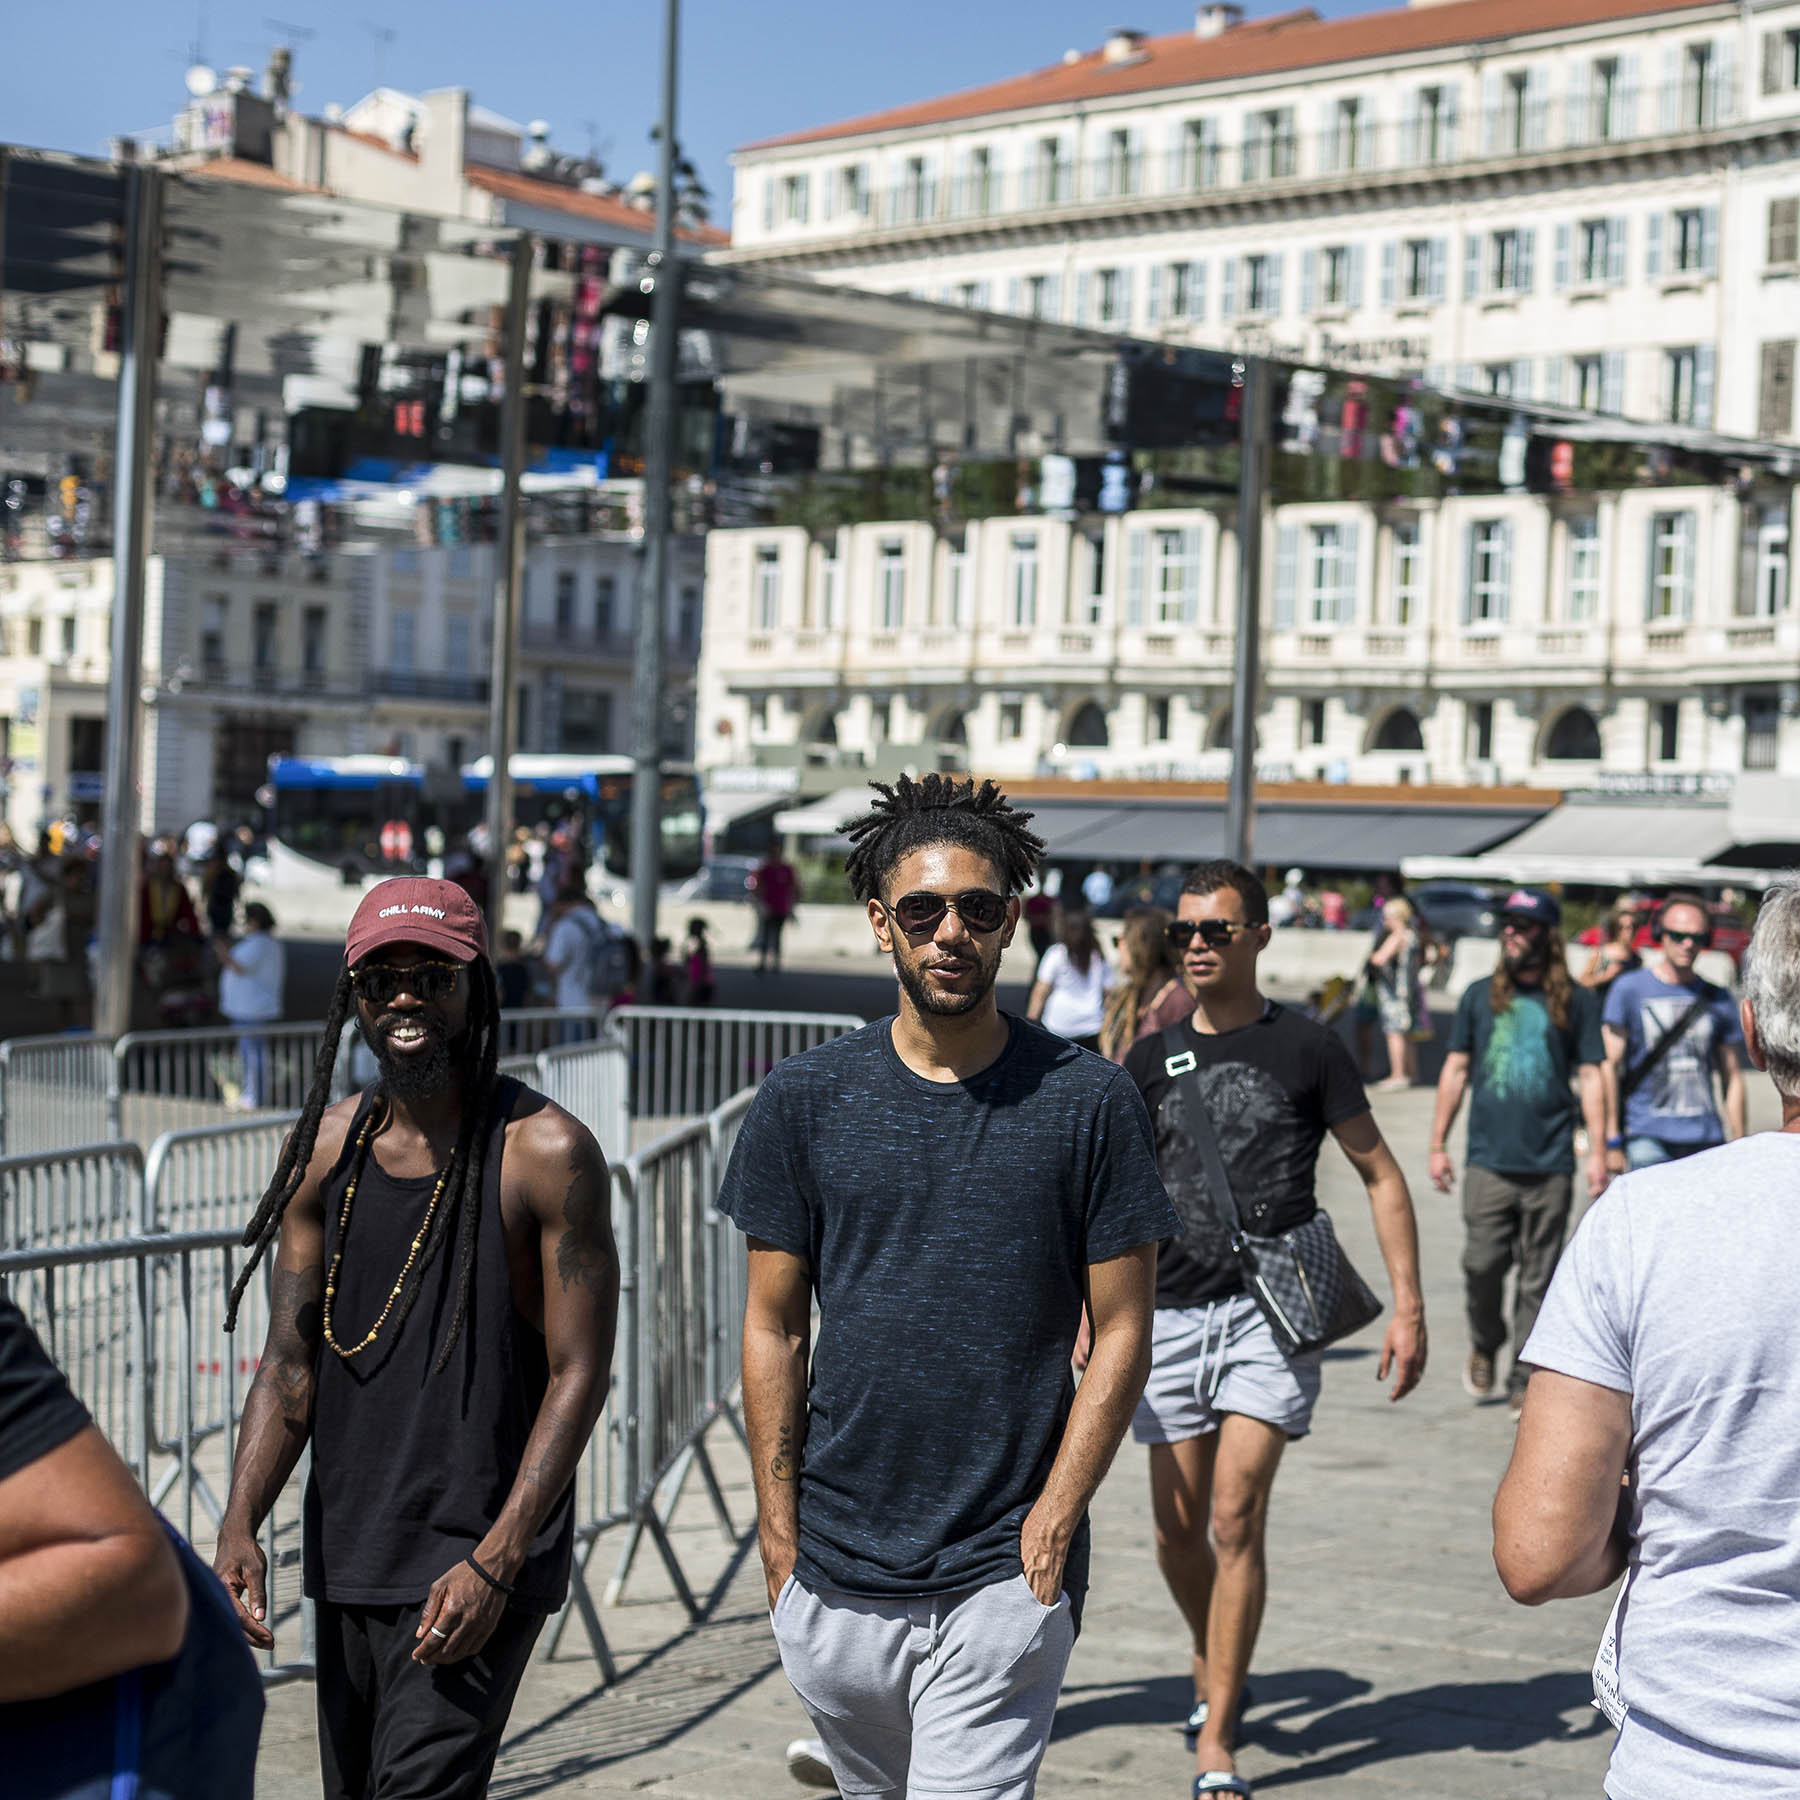 Two young Black men smiling at the camera stand out among the pedestrians walking through a public space on a summer day.